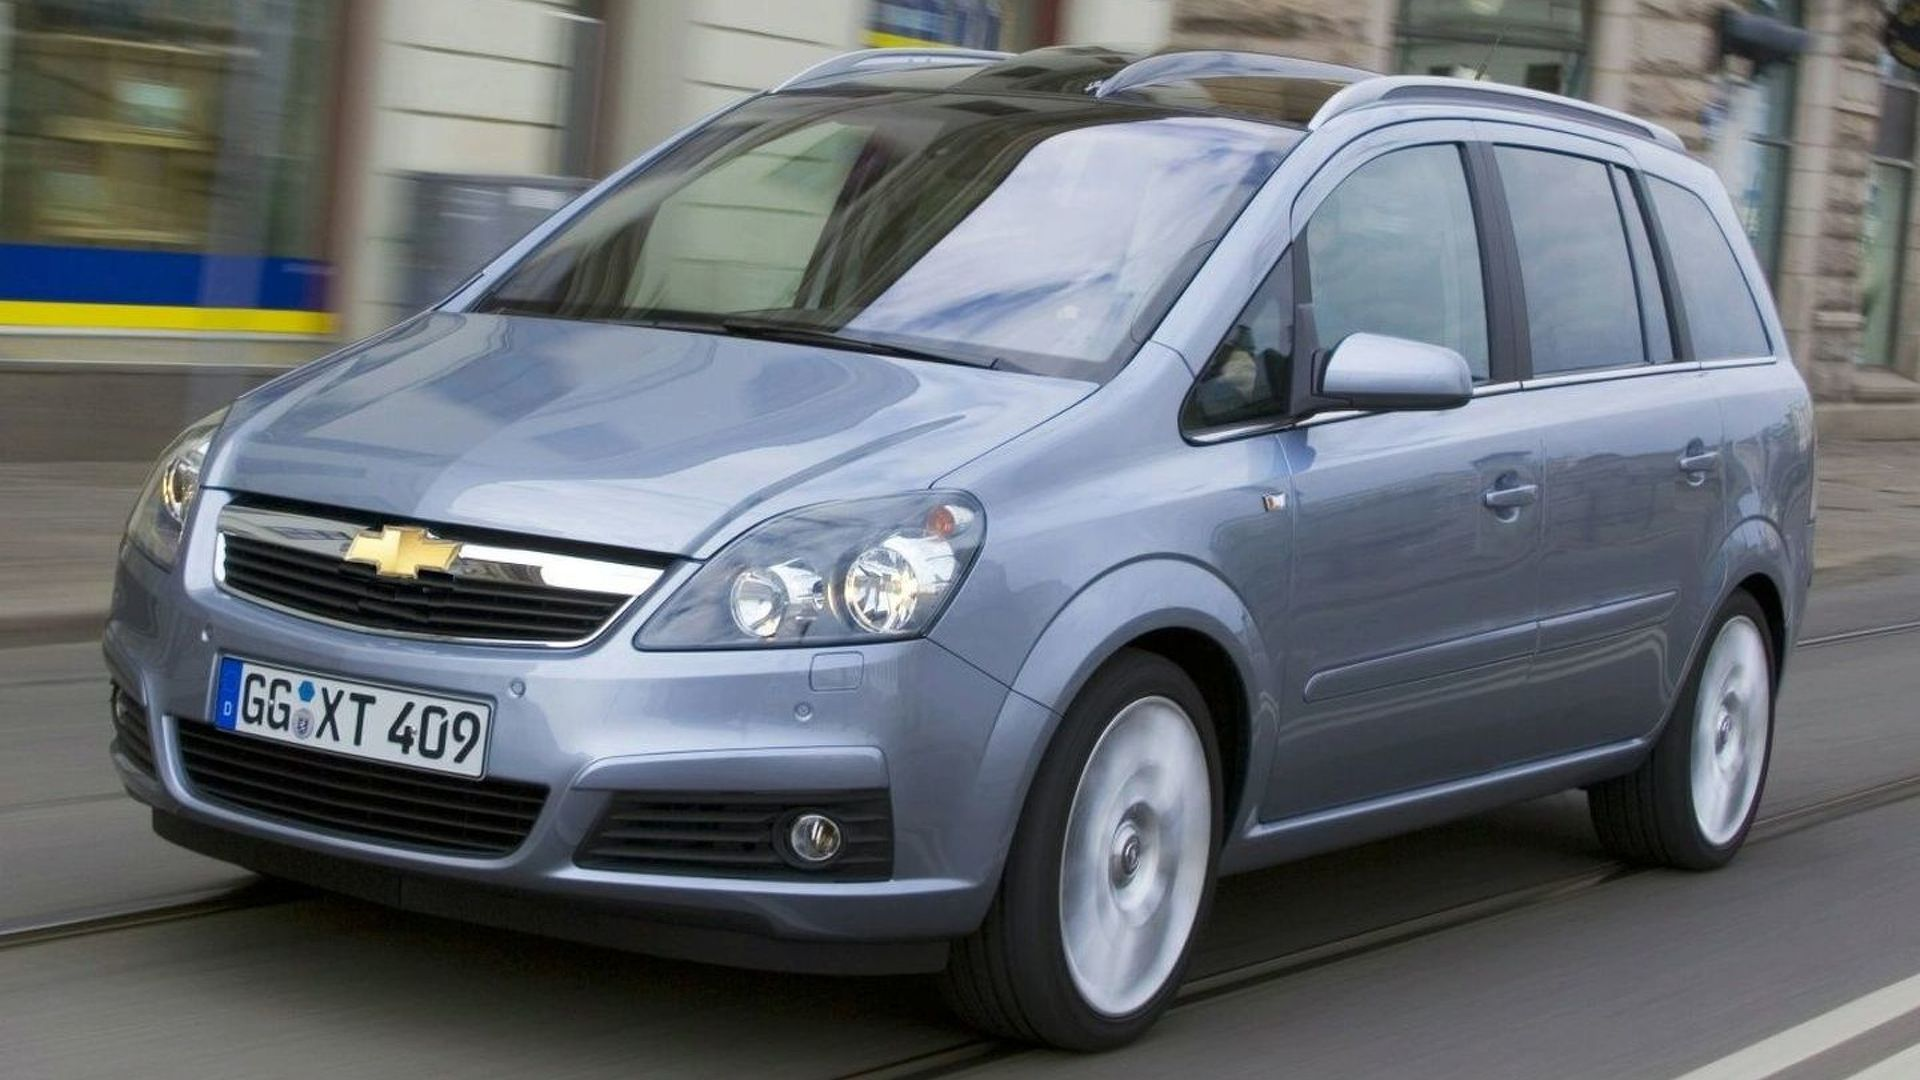 New Compact Minivan for Chevrolet in 2009